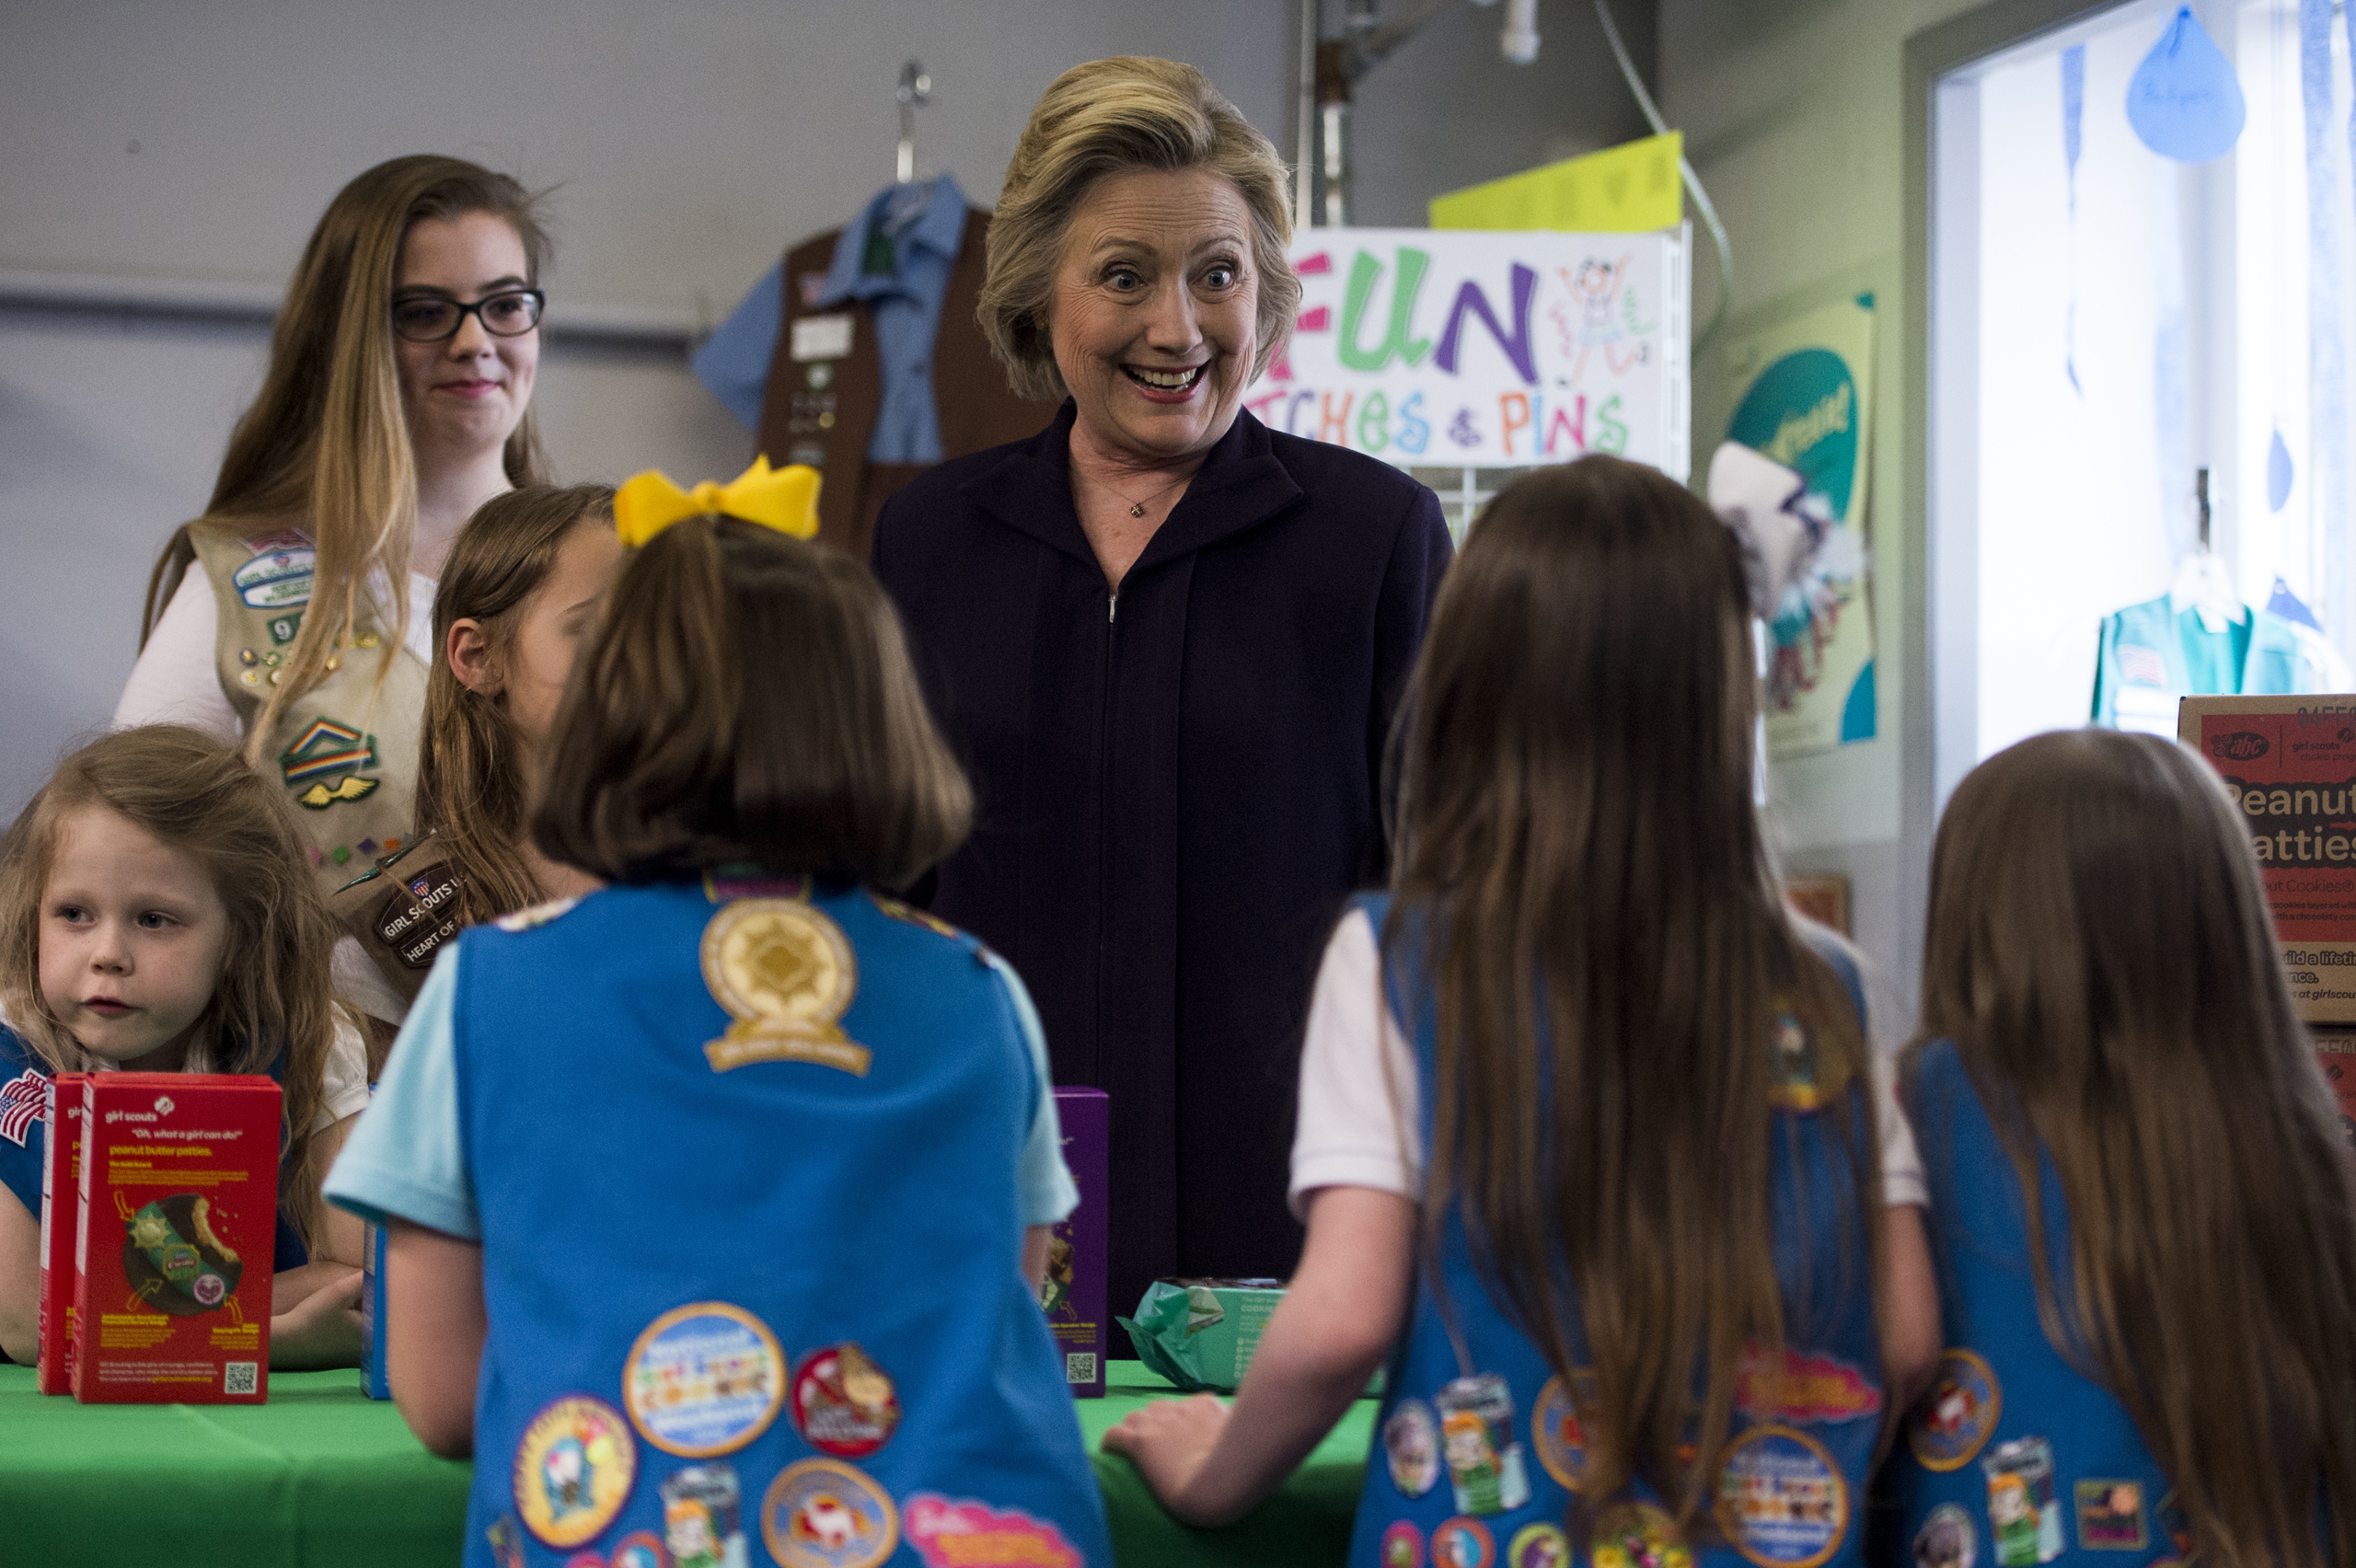 Hillary Clinton buys Girl Scout cookies at the Girl Scouts of Kentucky shop in Ashland, Ky., on May 2, 2016.